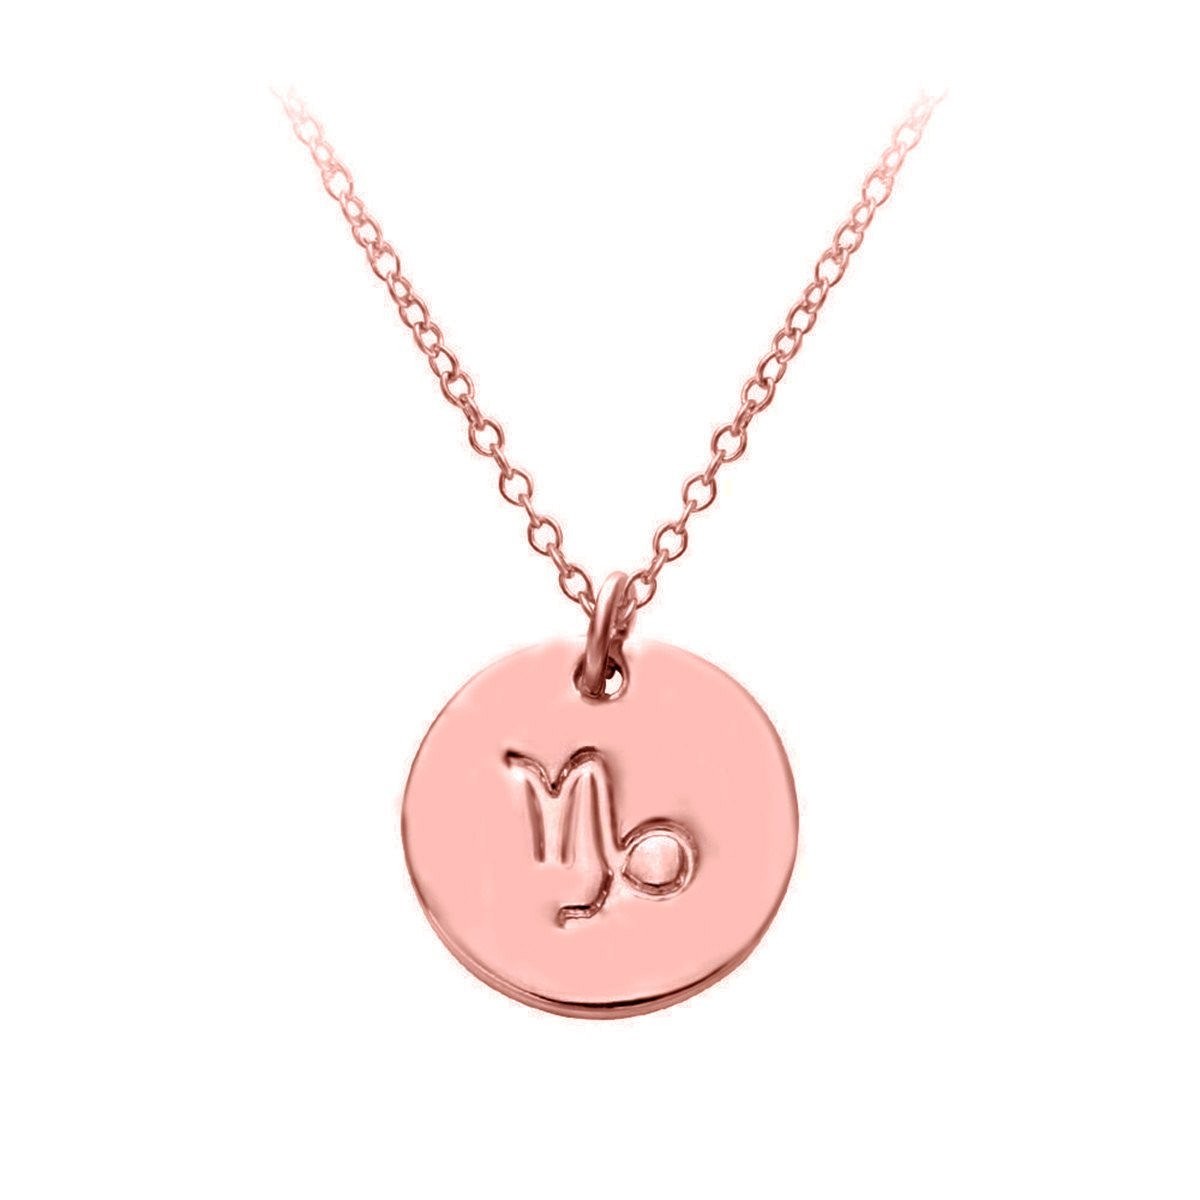 HACOOL 18k Rose Gold Plated Women Zodiac Sign Tag Constellation Horoscope Astrology Disc Charm Necklace